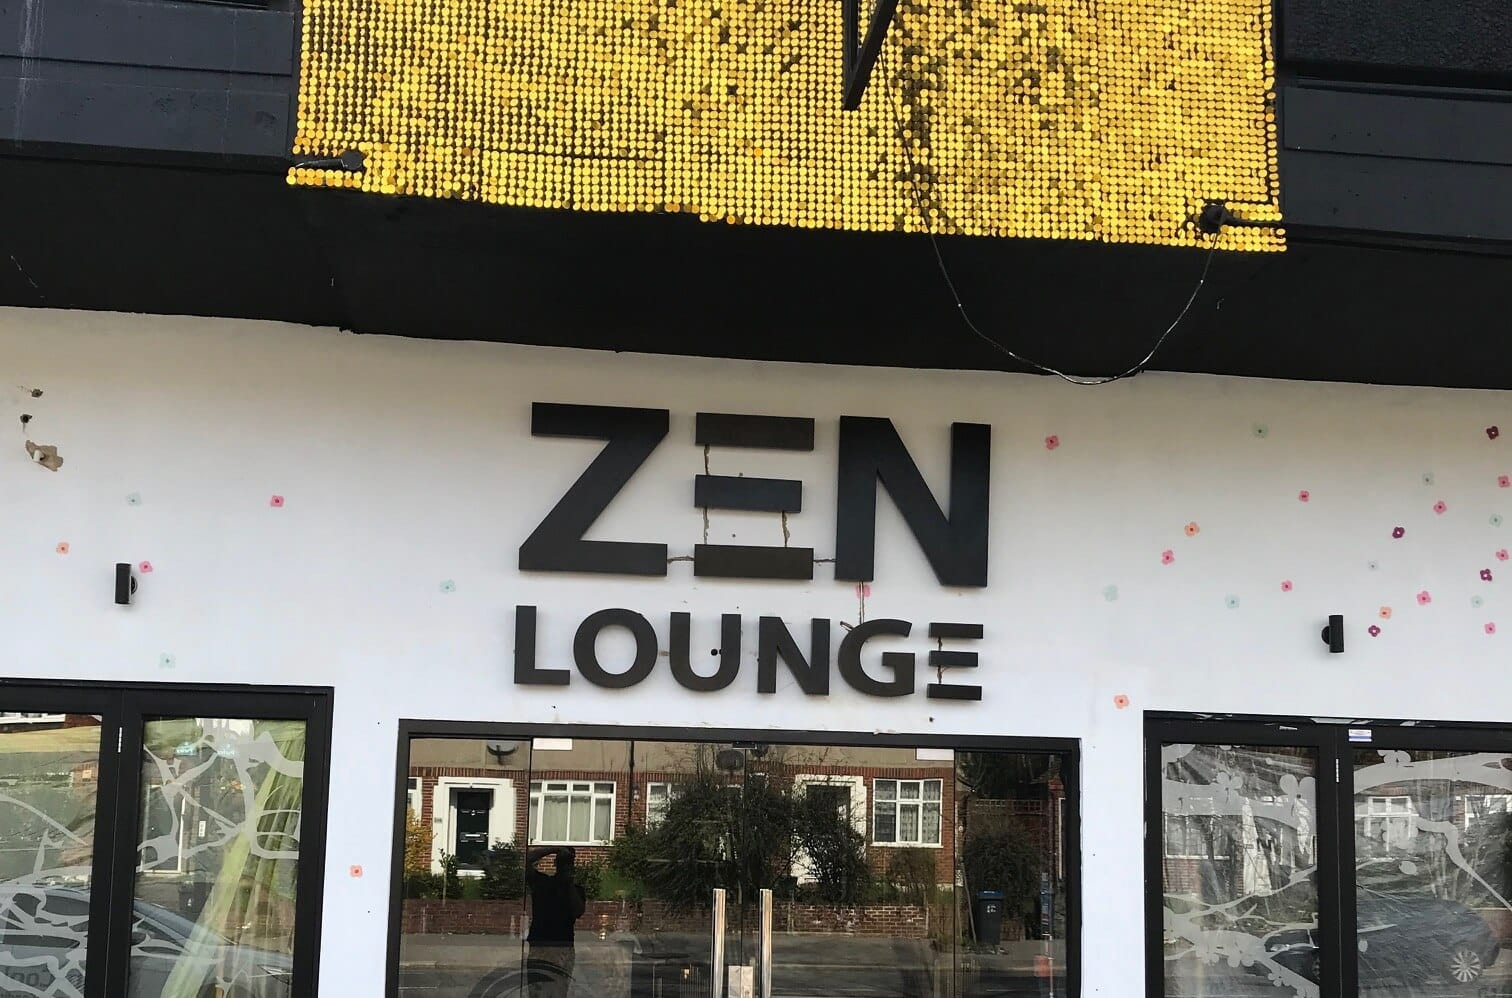 The exterior of the Zen Lounge nightclub